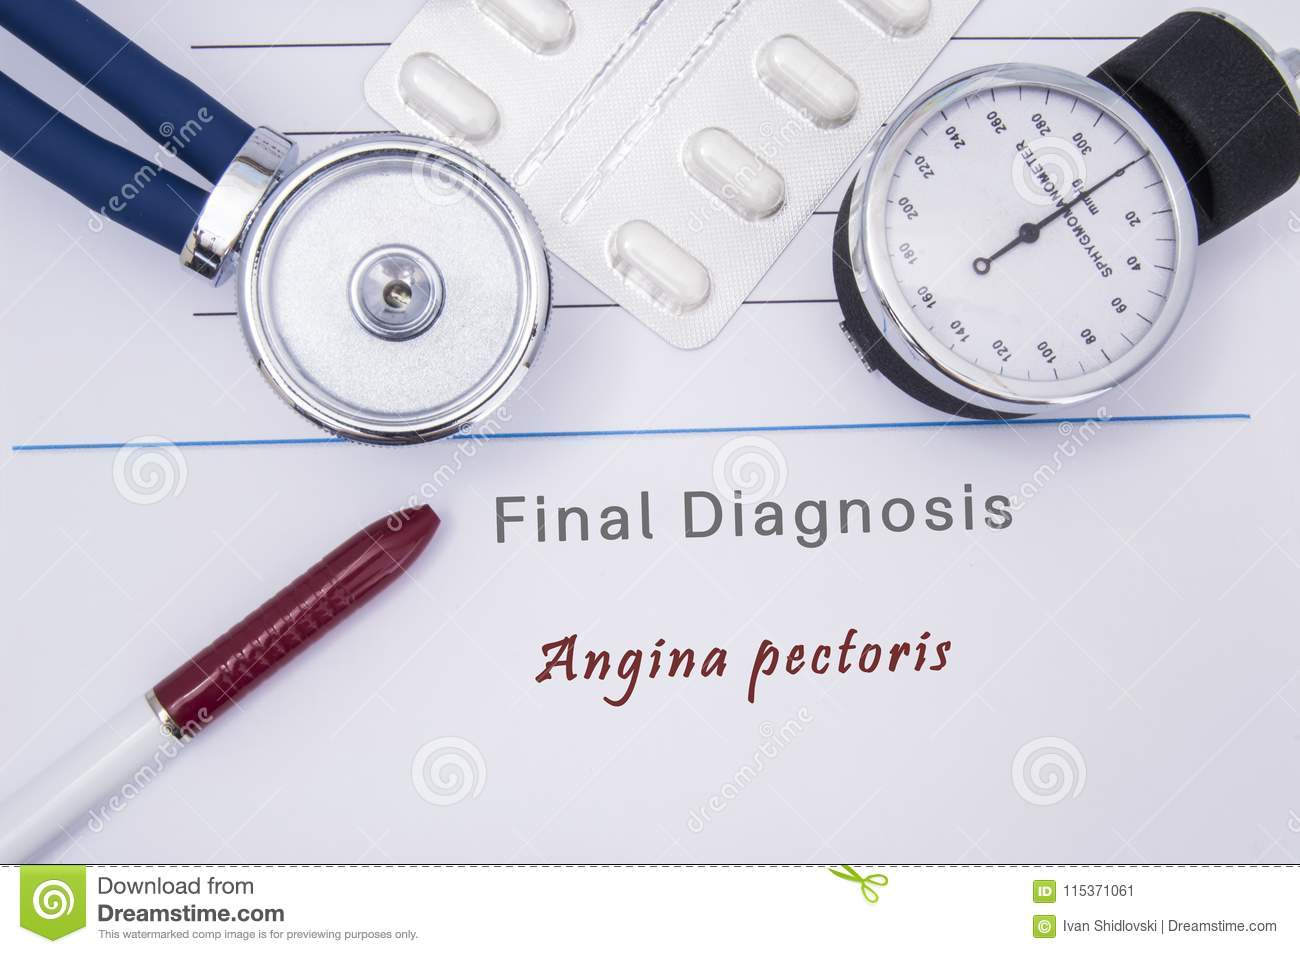 Paper medical form with the diagnosis of Angina pectoris on which lie the stethoscope, blood pressure monitor, white tablets or pi